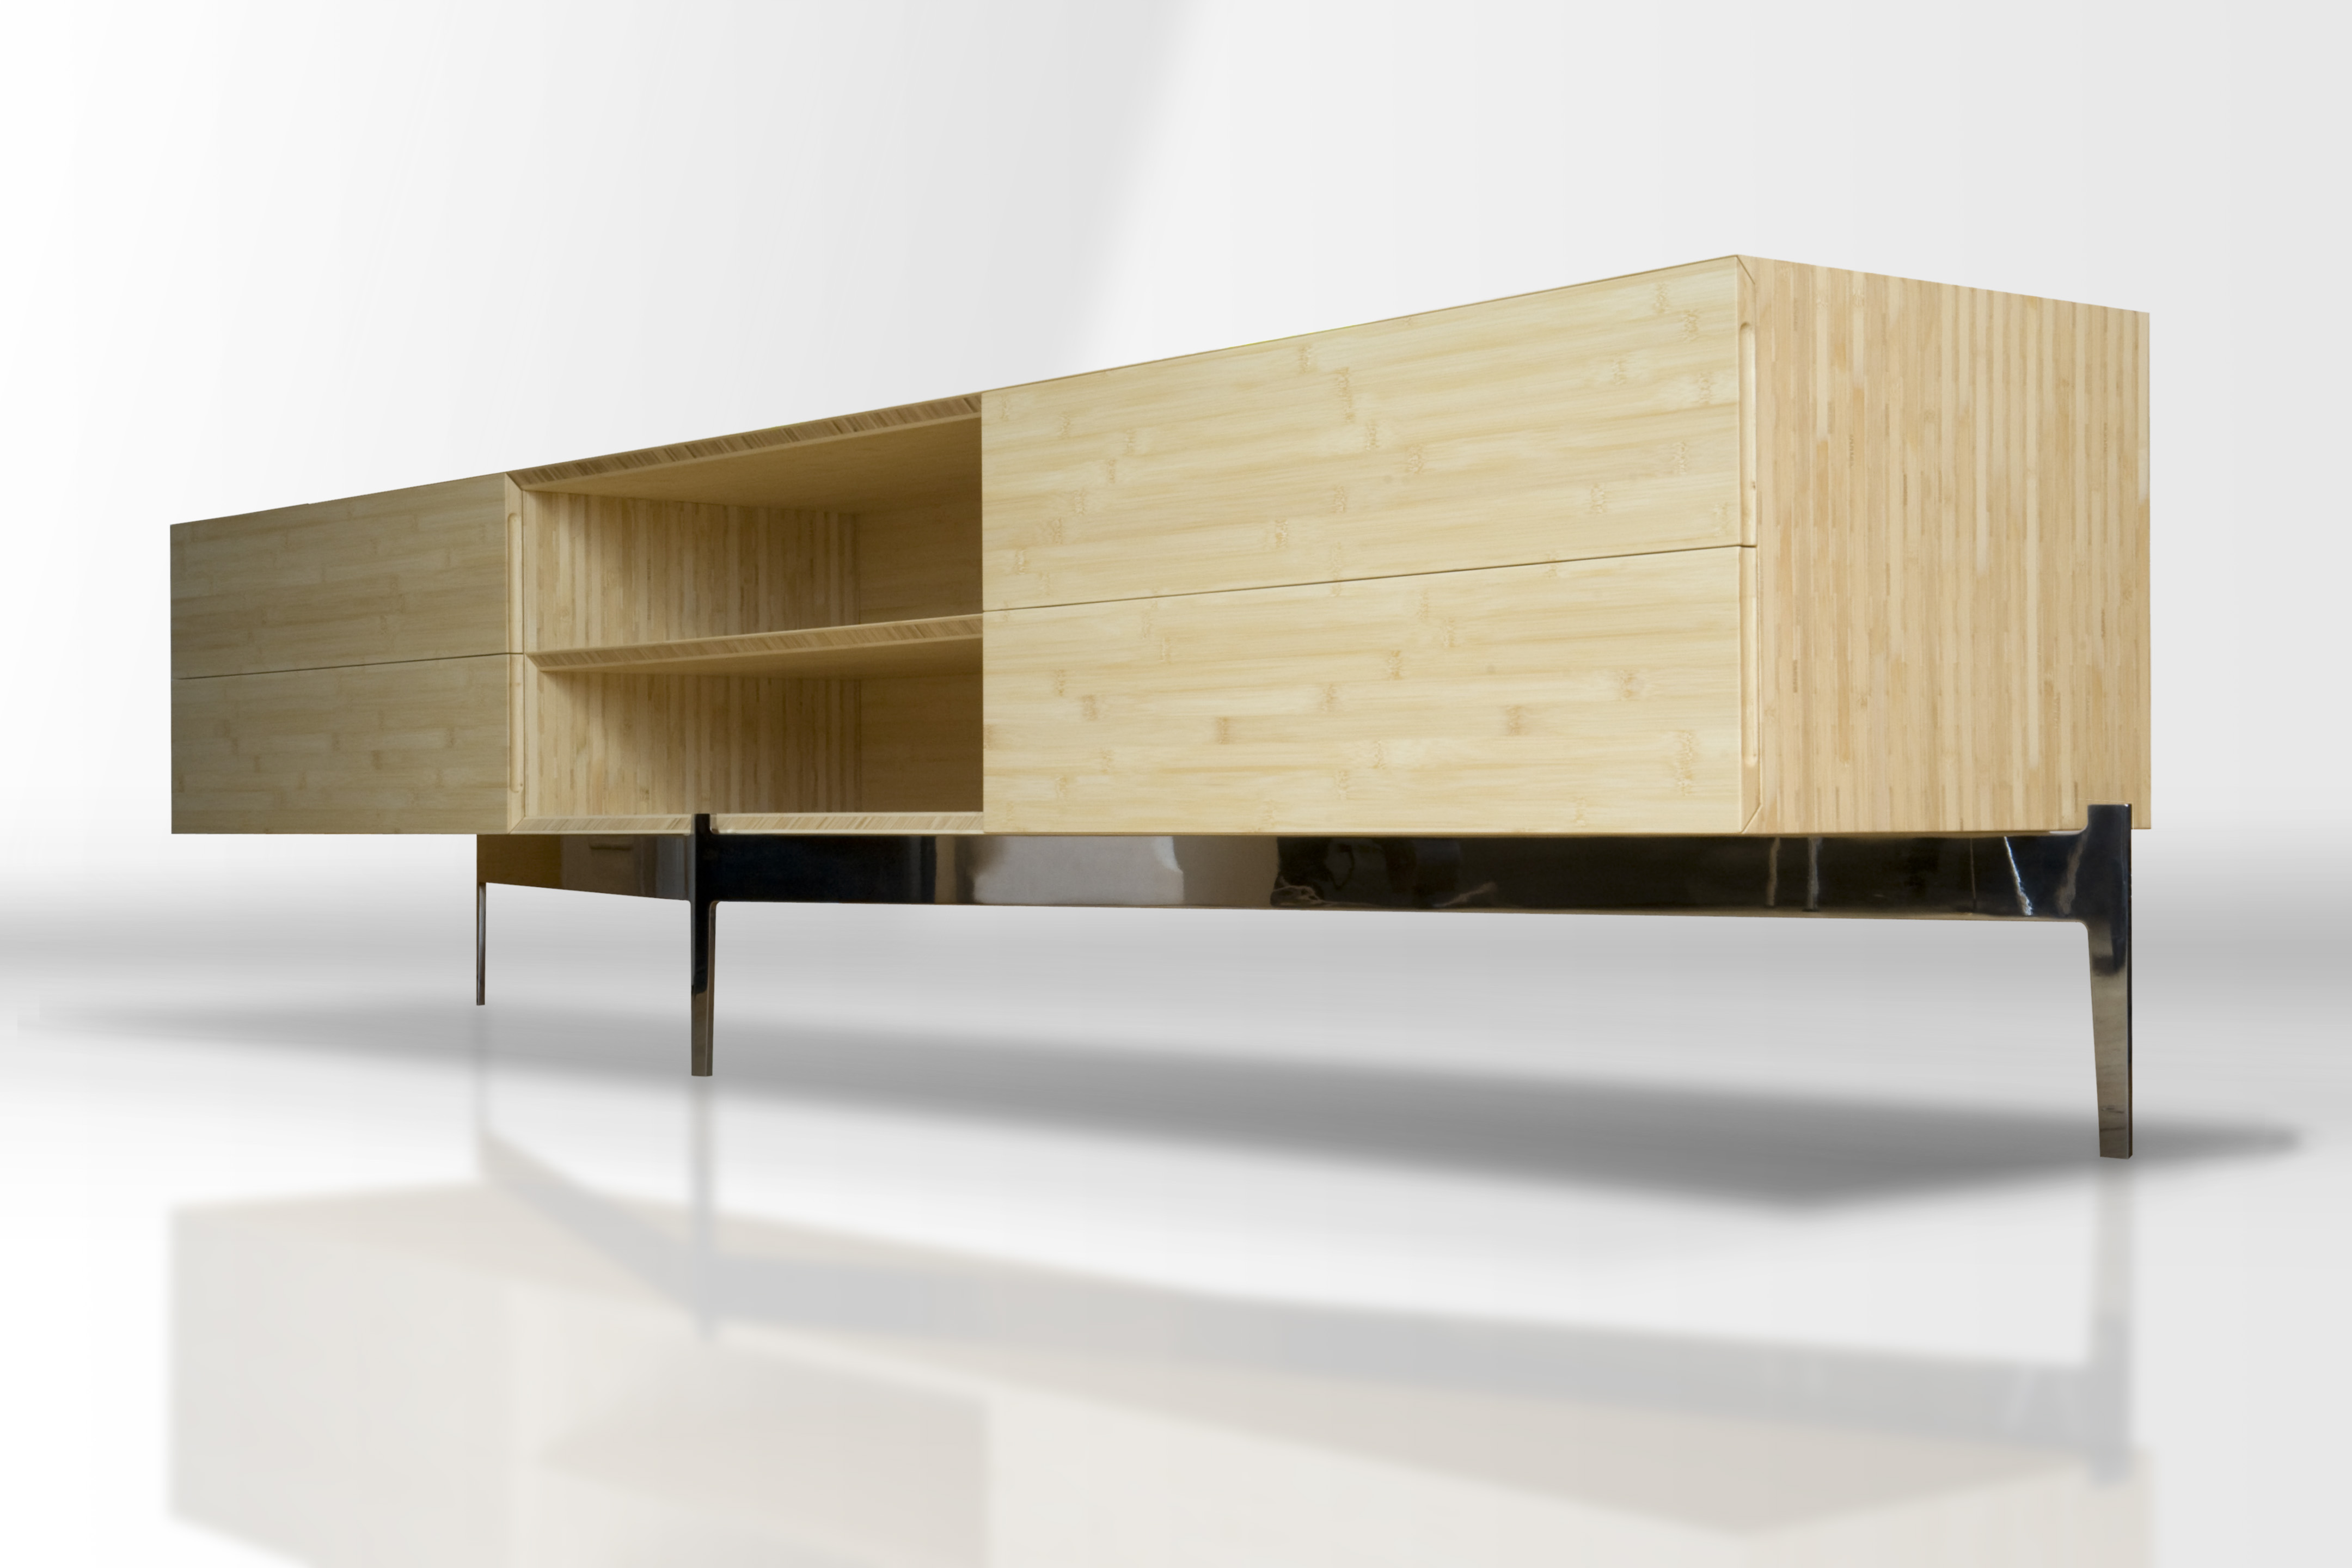 BUTZ + KLUG Architecture, custom furniture, credenza, bamboo